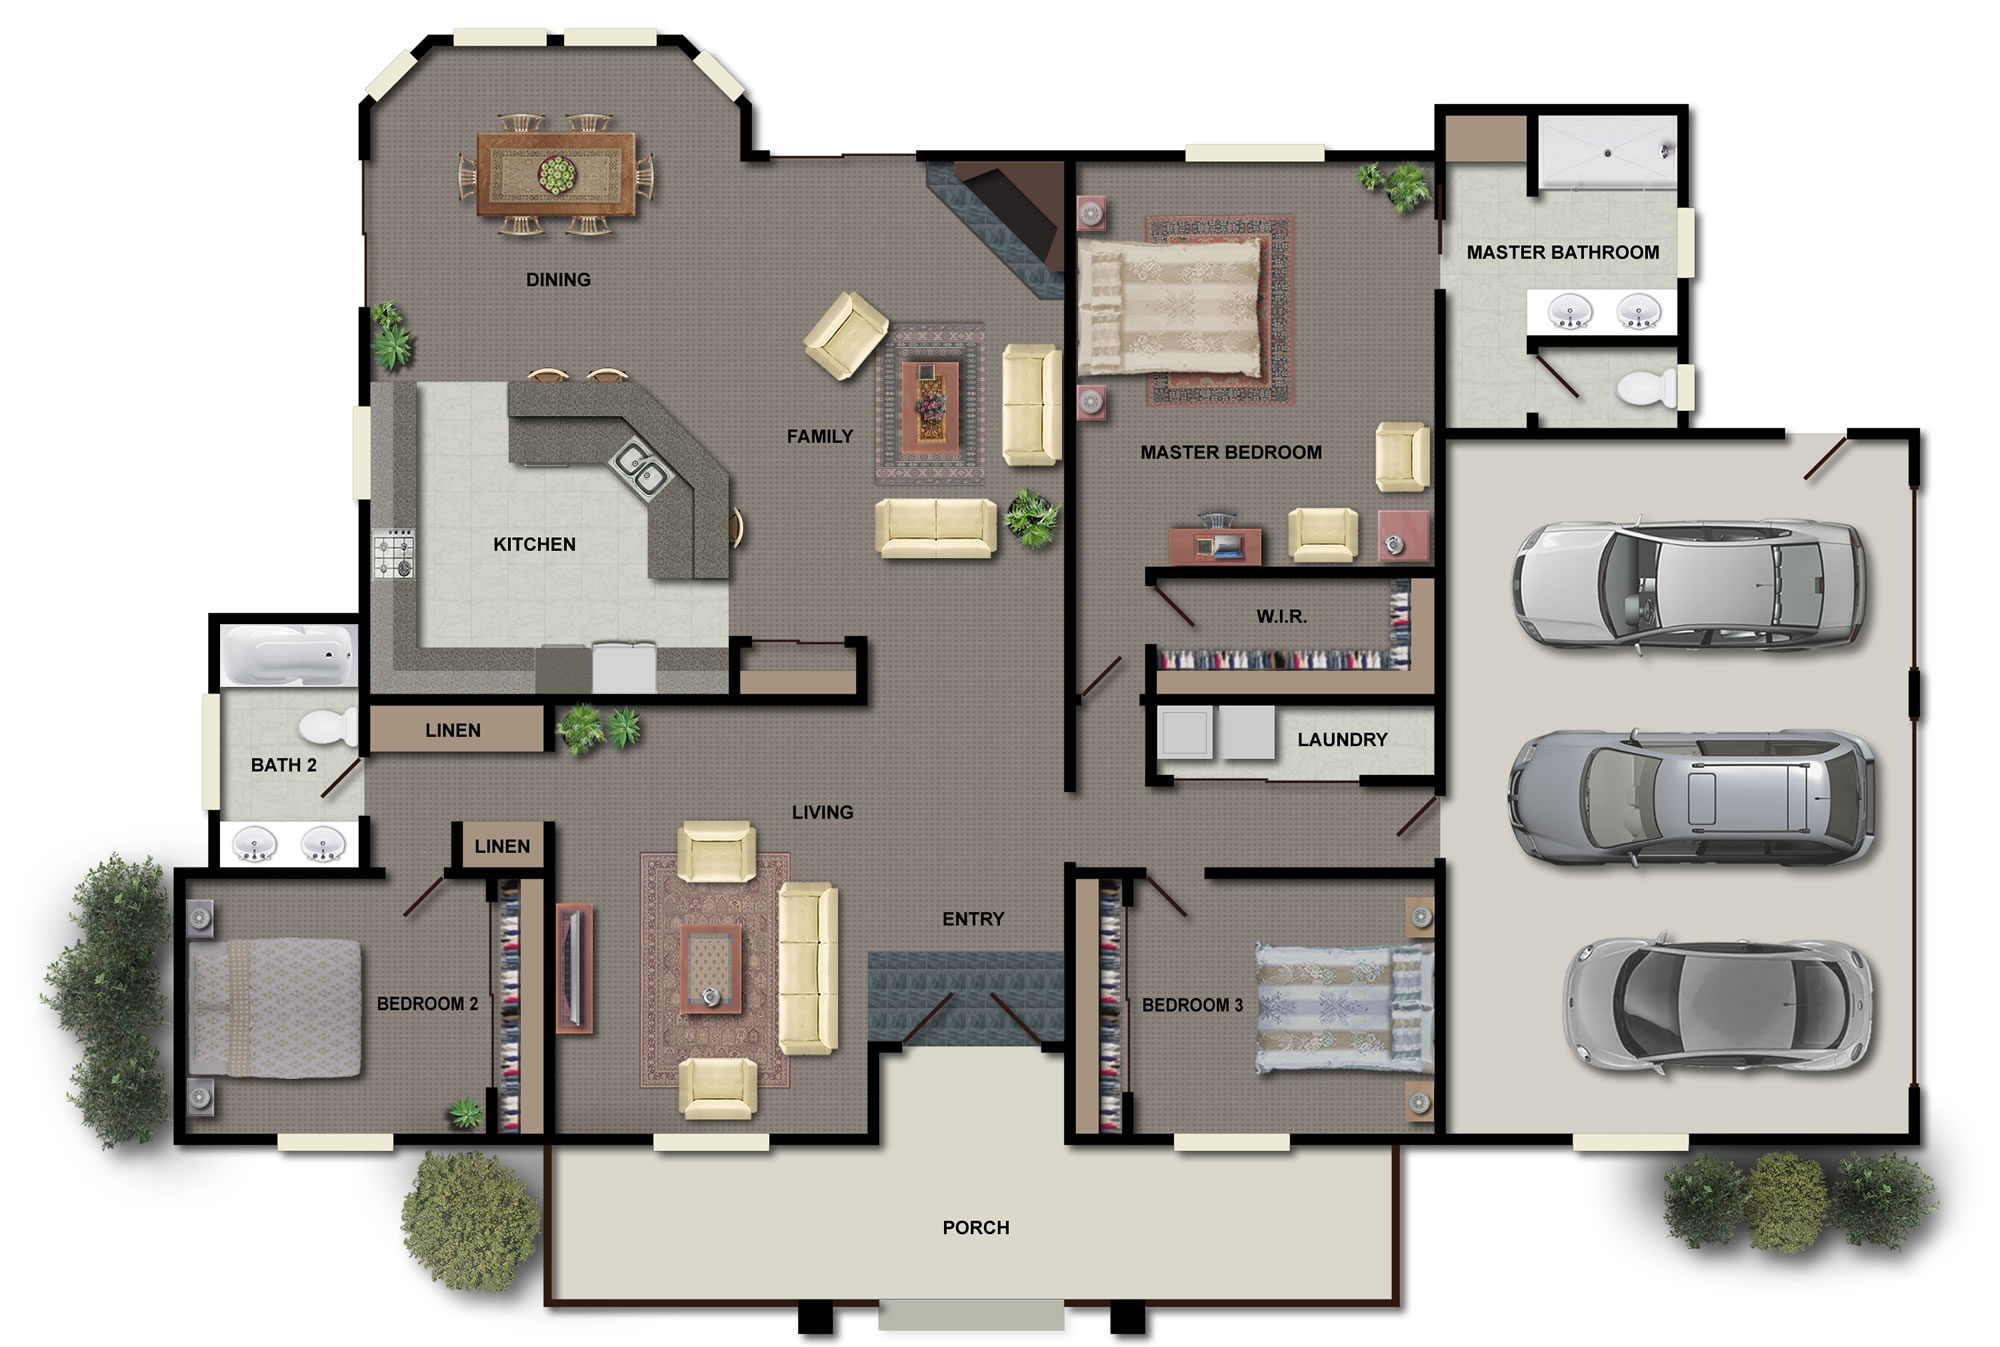 Good Homeu0027s Floor Plan In 2D With Large Cart Port For Three Units Of Car And  Front